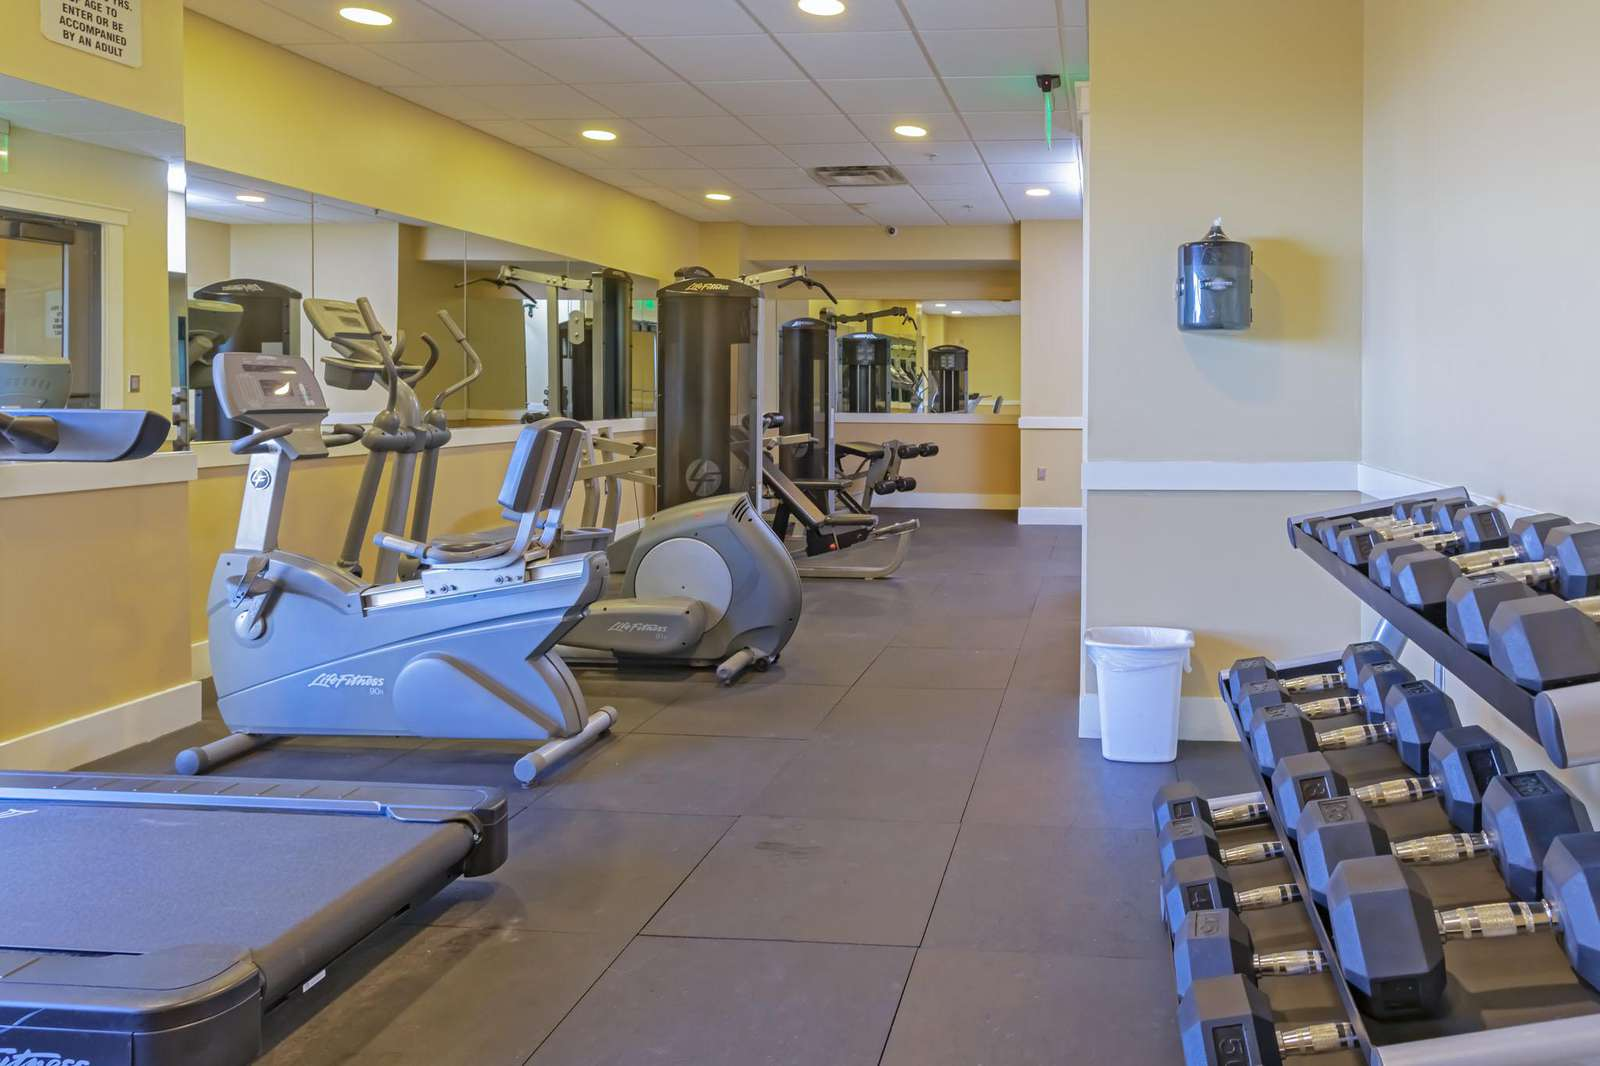 Nicely kept exercise room!